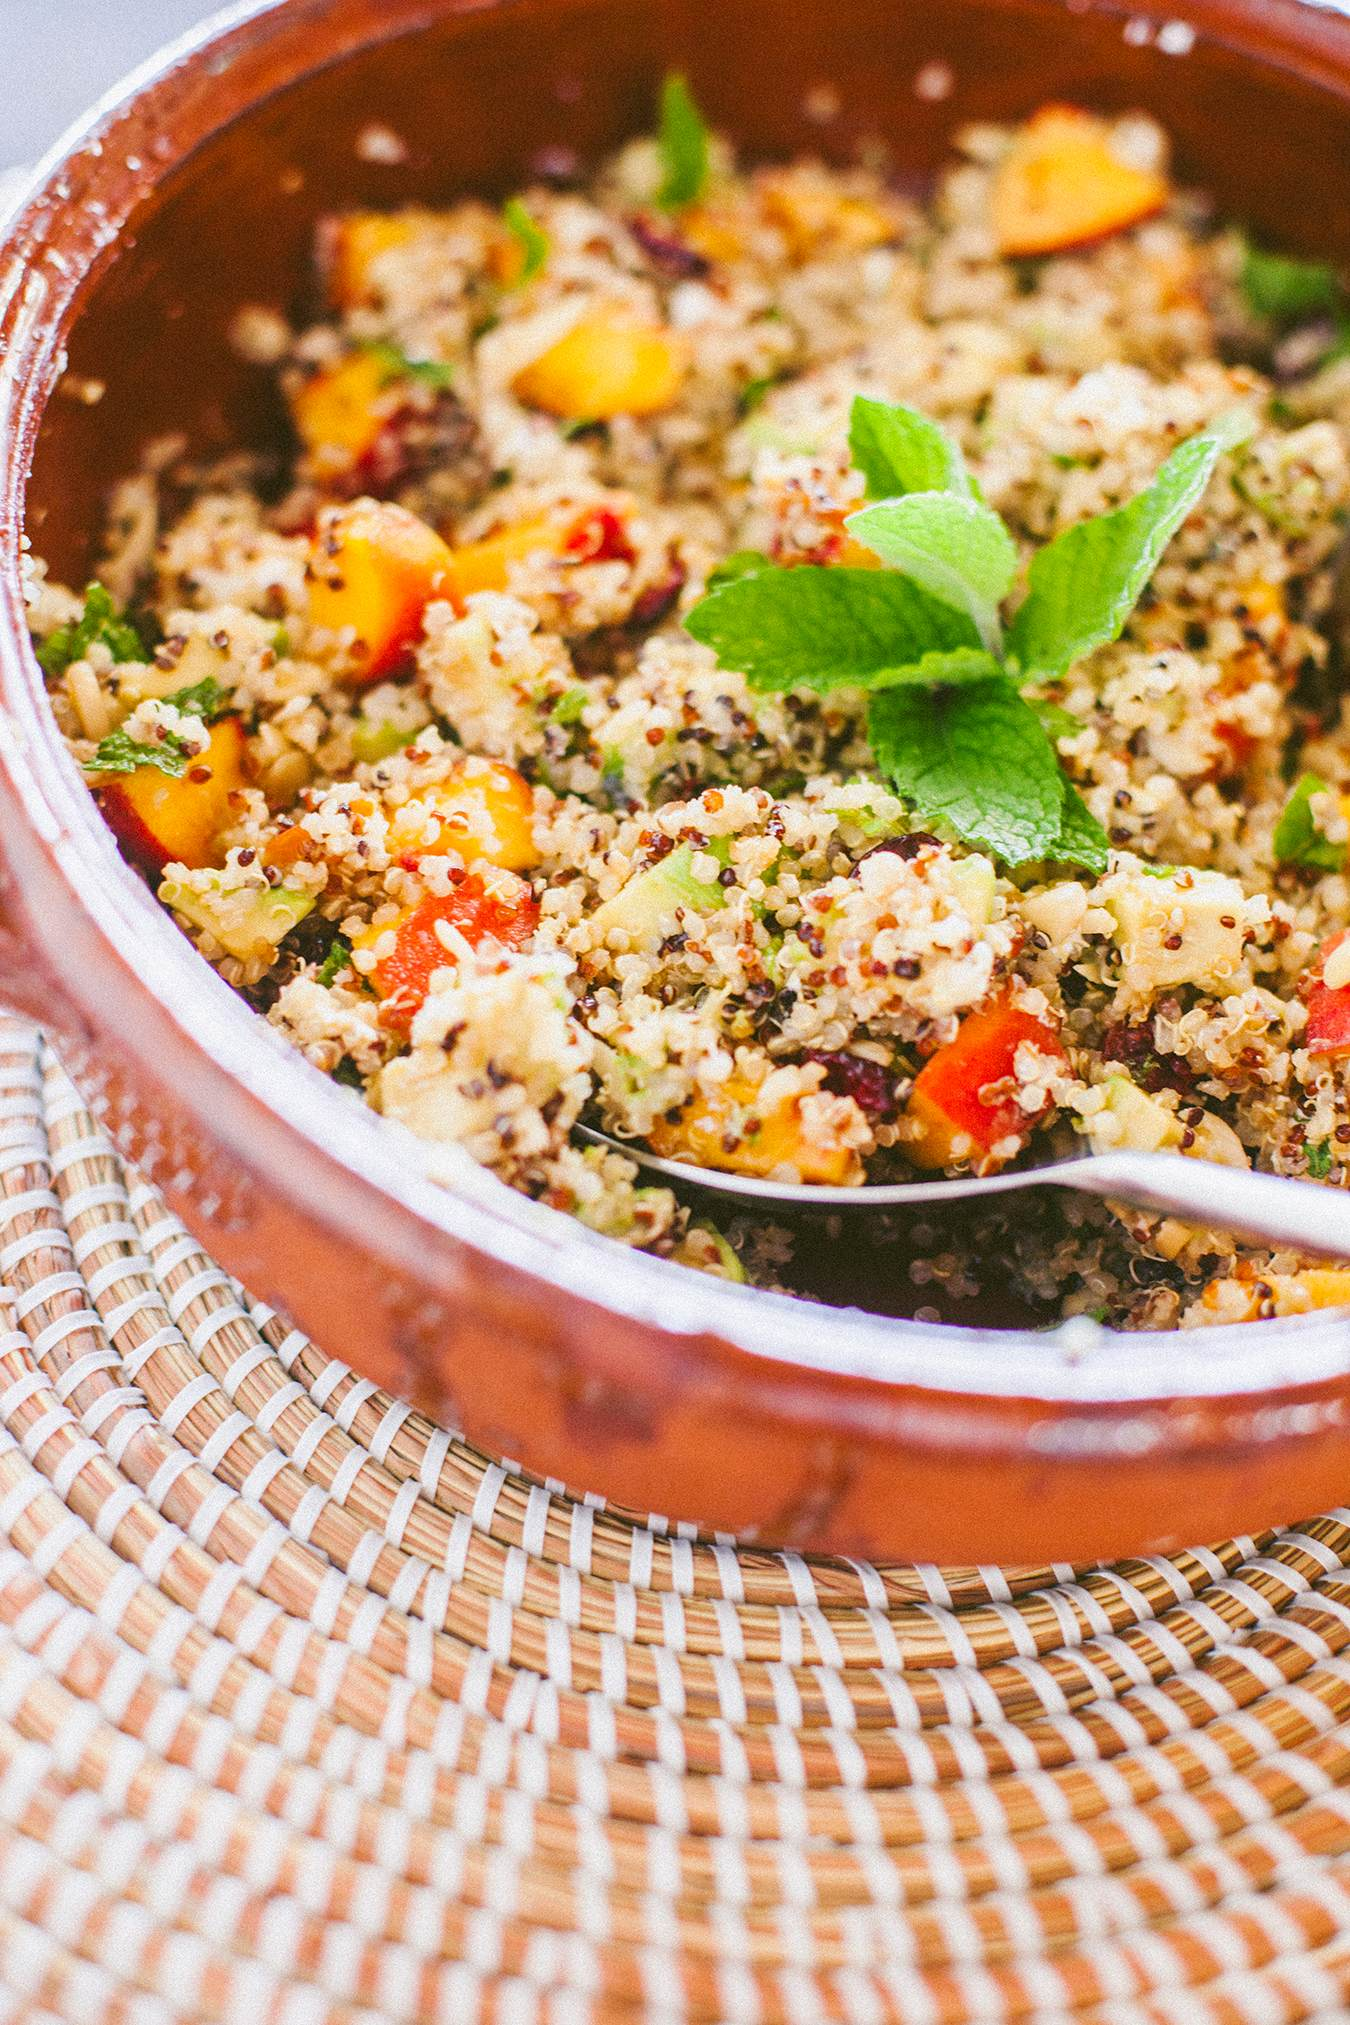 Date,-Mint-&-Peach-Quinoa-Salad12-compressed